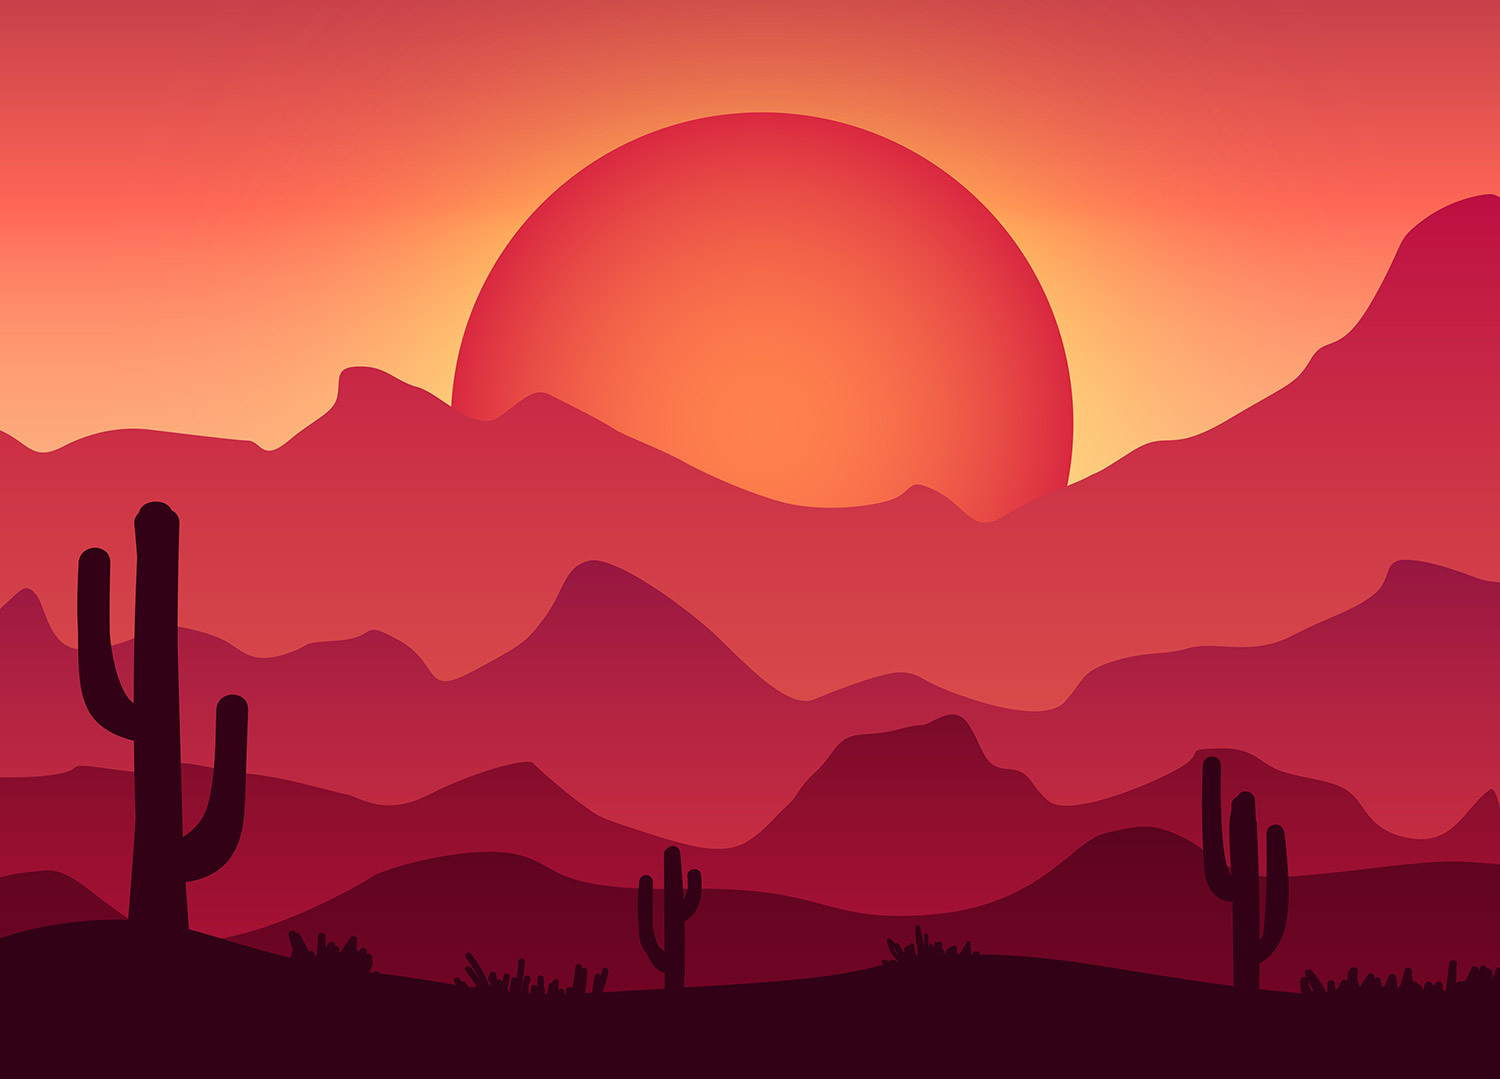 Android Phone Fall Wallpaper How To Create A Colorful Vector Landscape Illustration